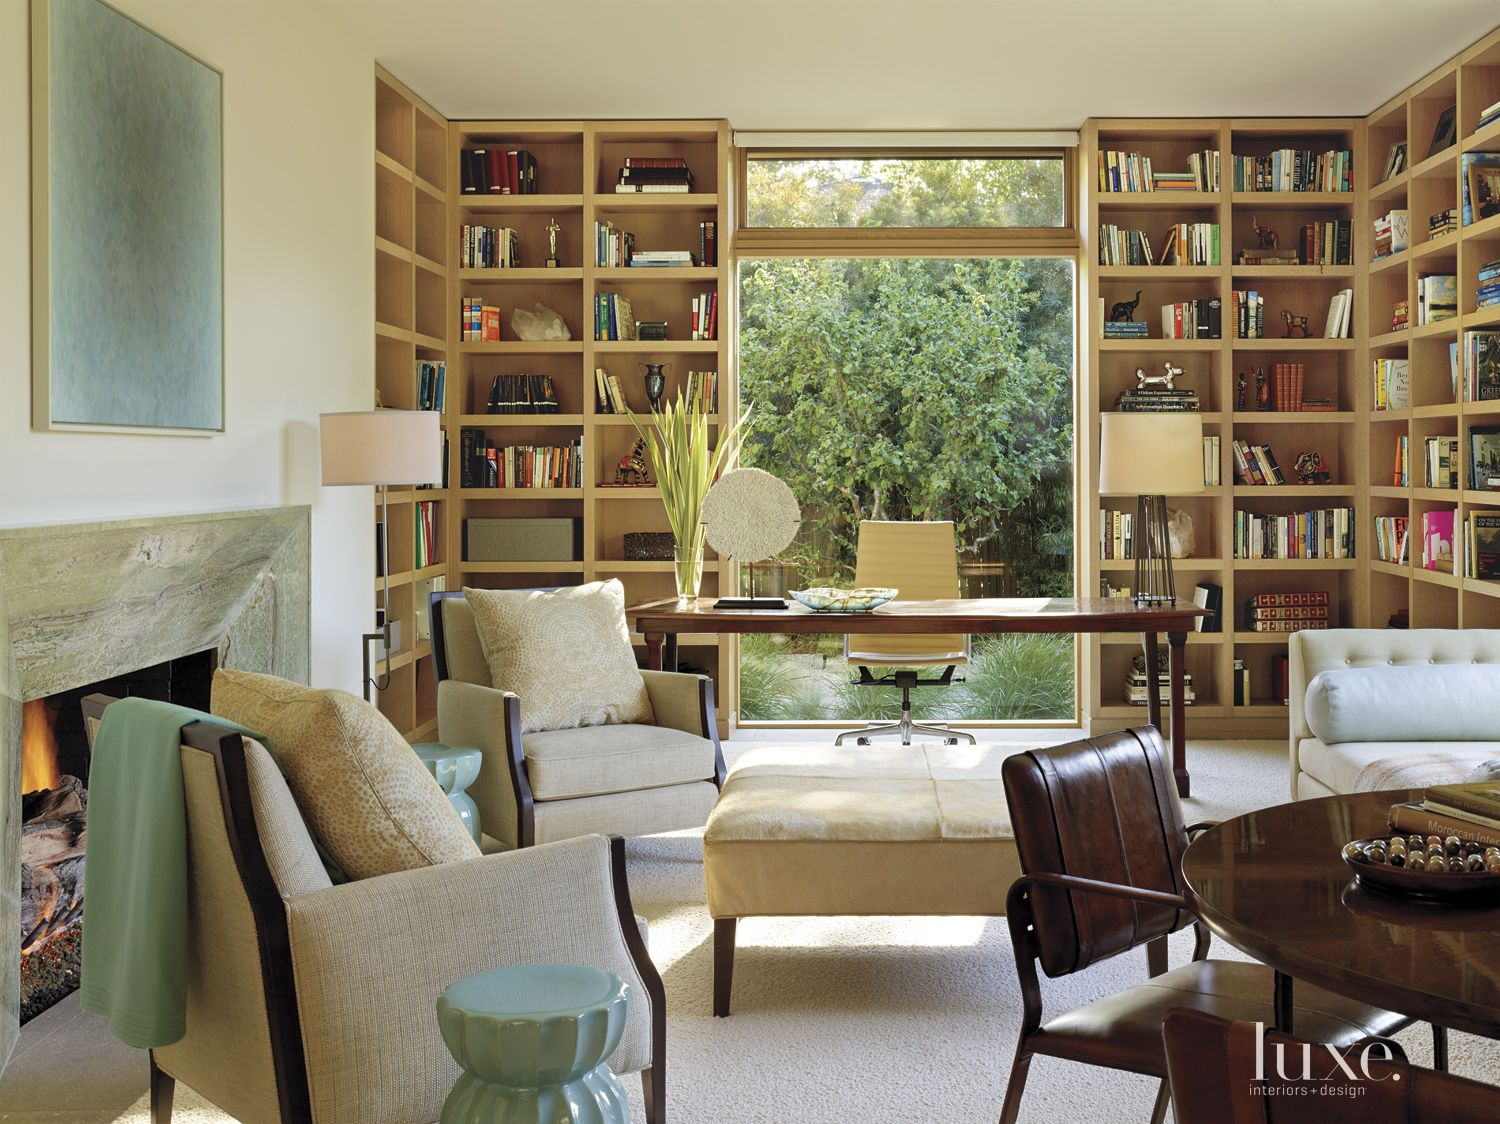 Modern Cream Library with Built-in Shelving